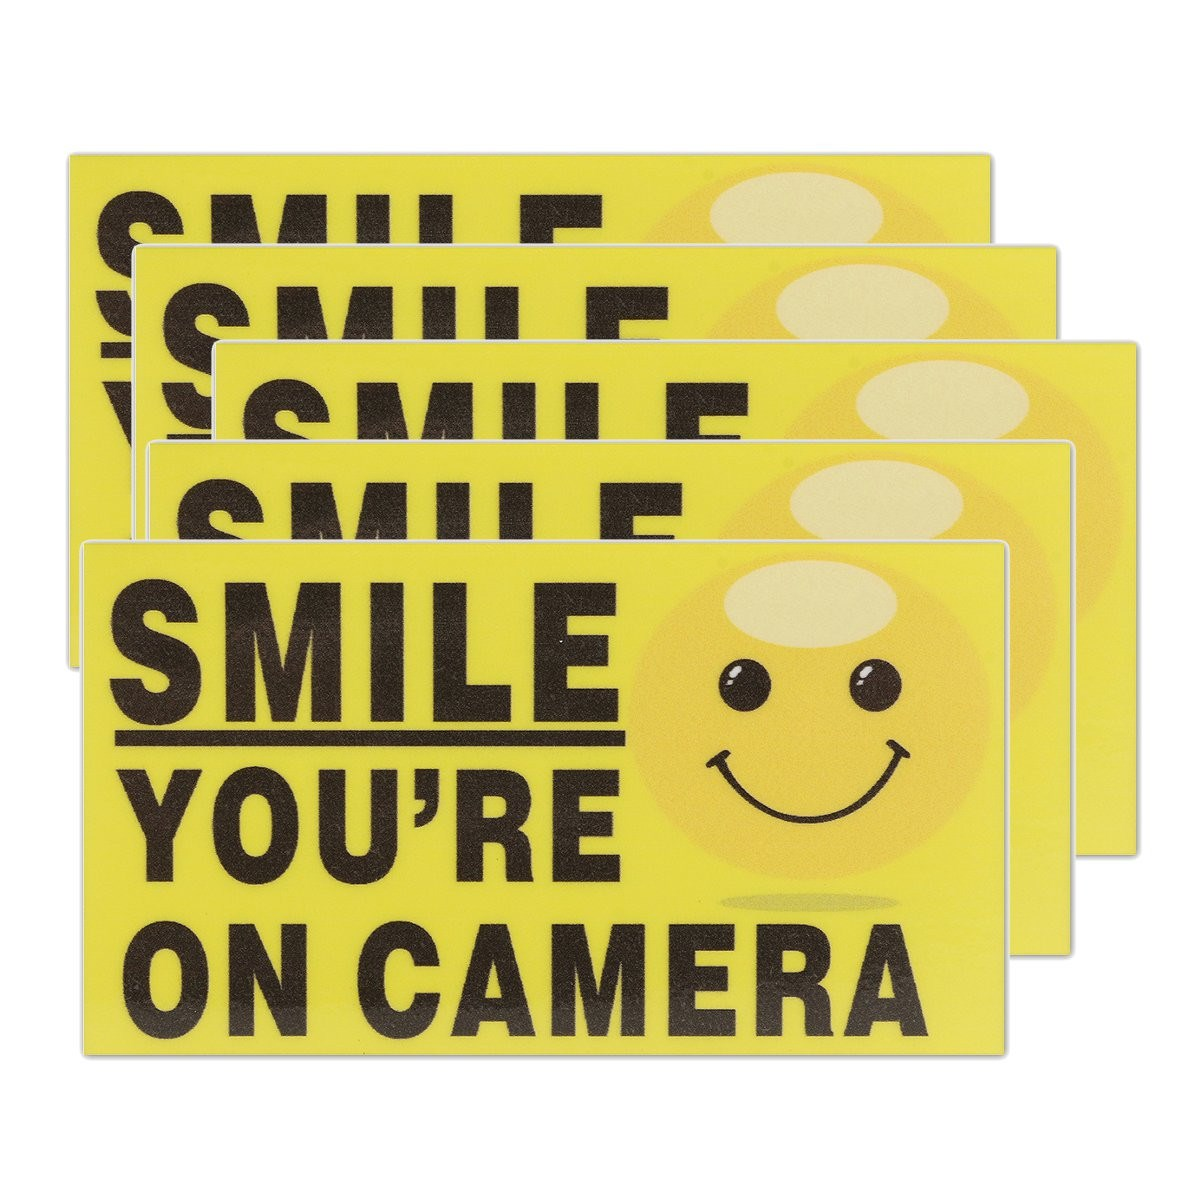 все цены на NEW Safurance 5x Smile You're On Camera Self-adhensive CCTV Video Alarm Safety Stickers Signs Decal Home Security Warning